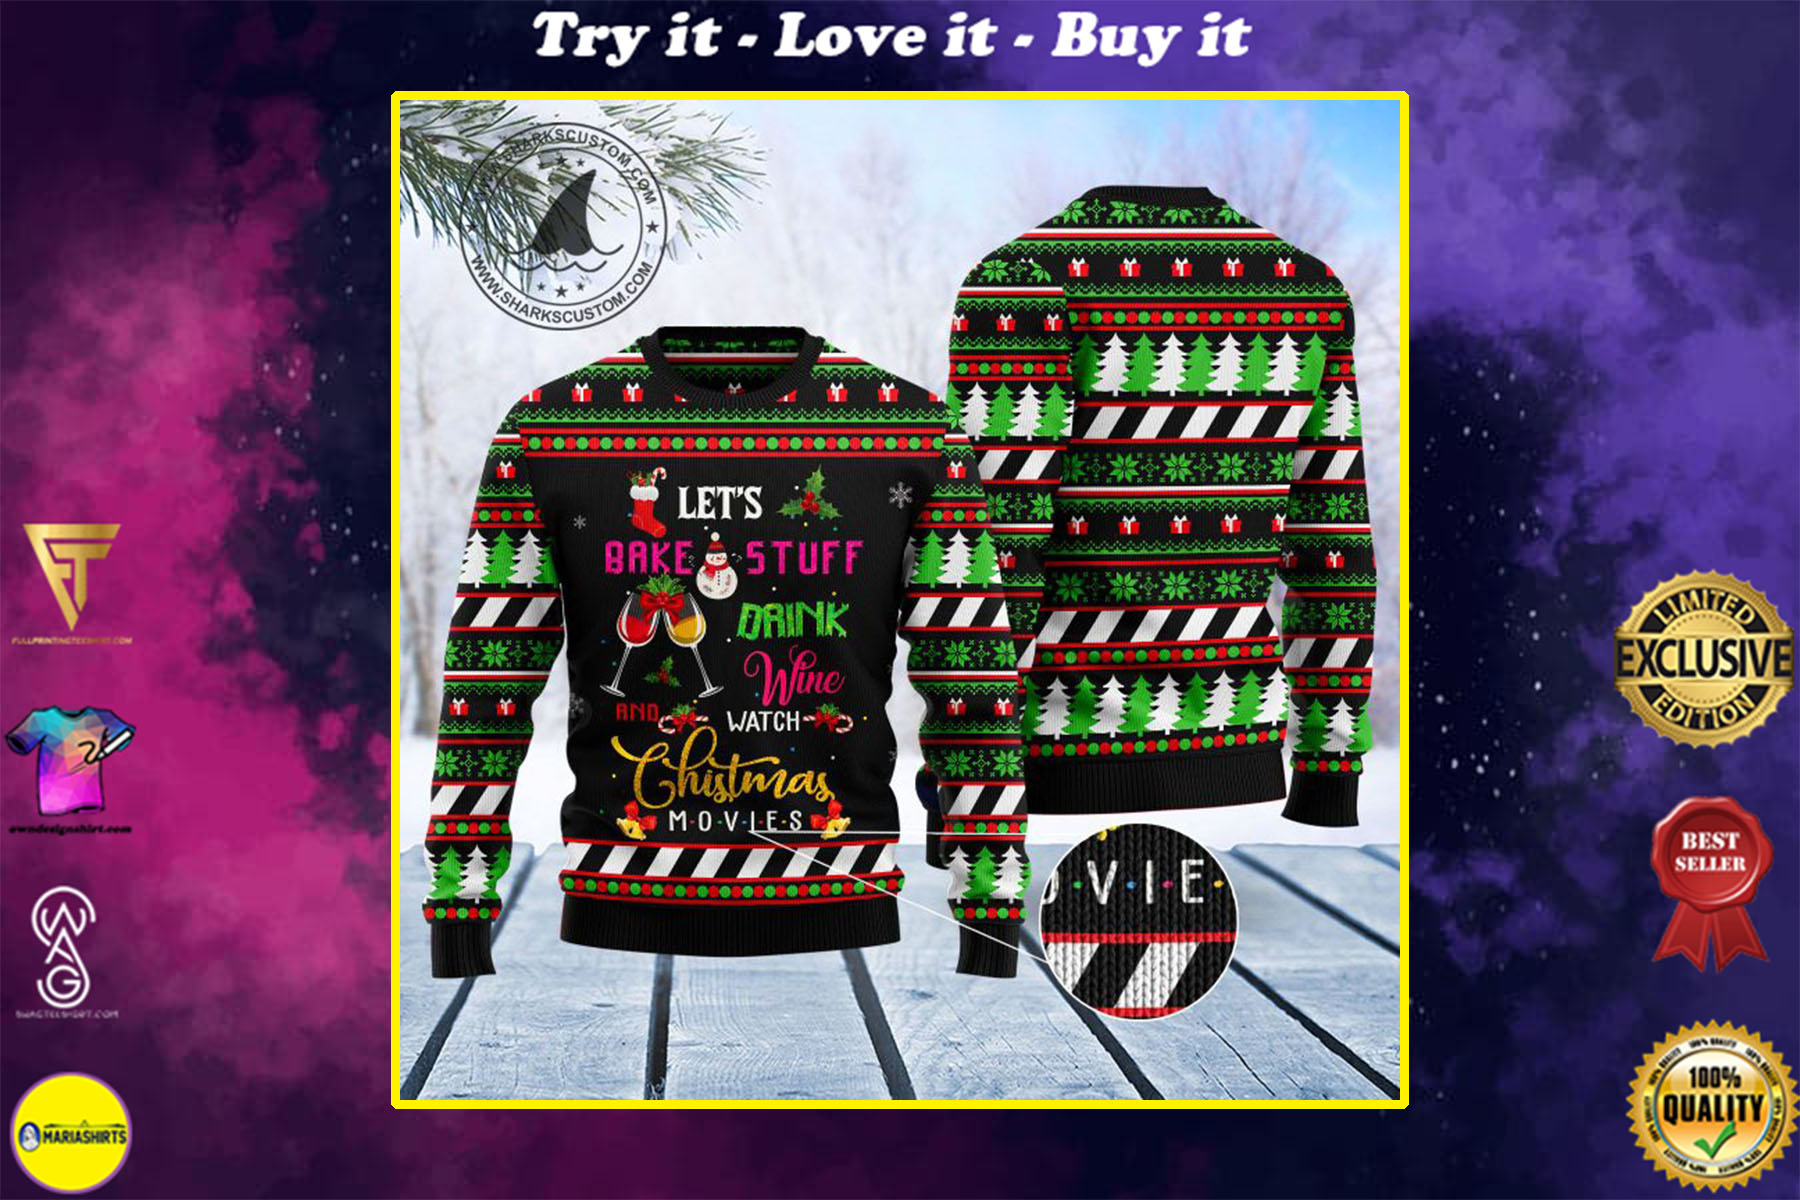 [special edition] lets bake stuff and watch hallmark movies all over printed ugly christmas sweater - maria